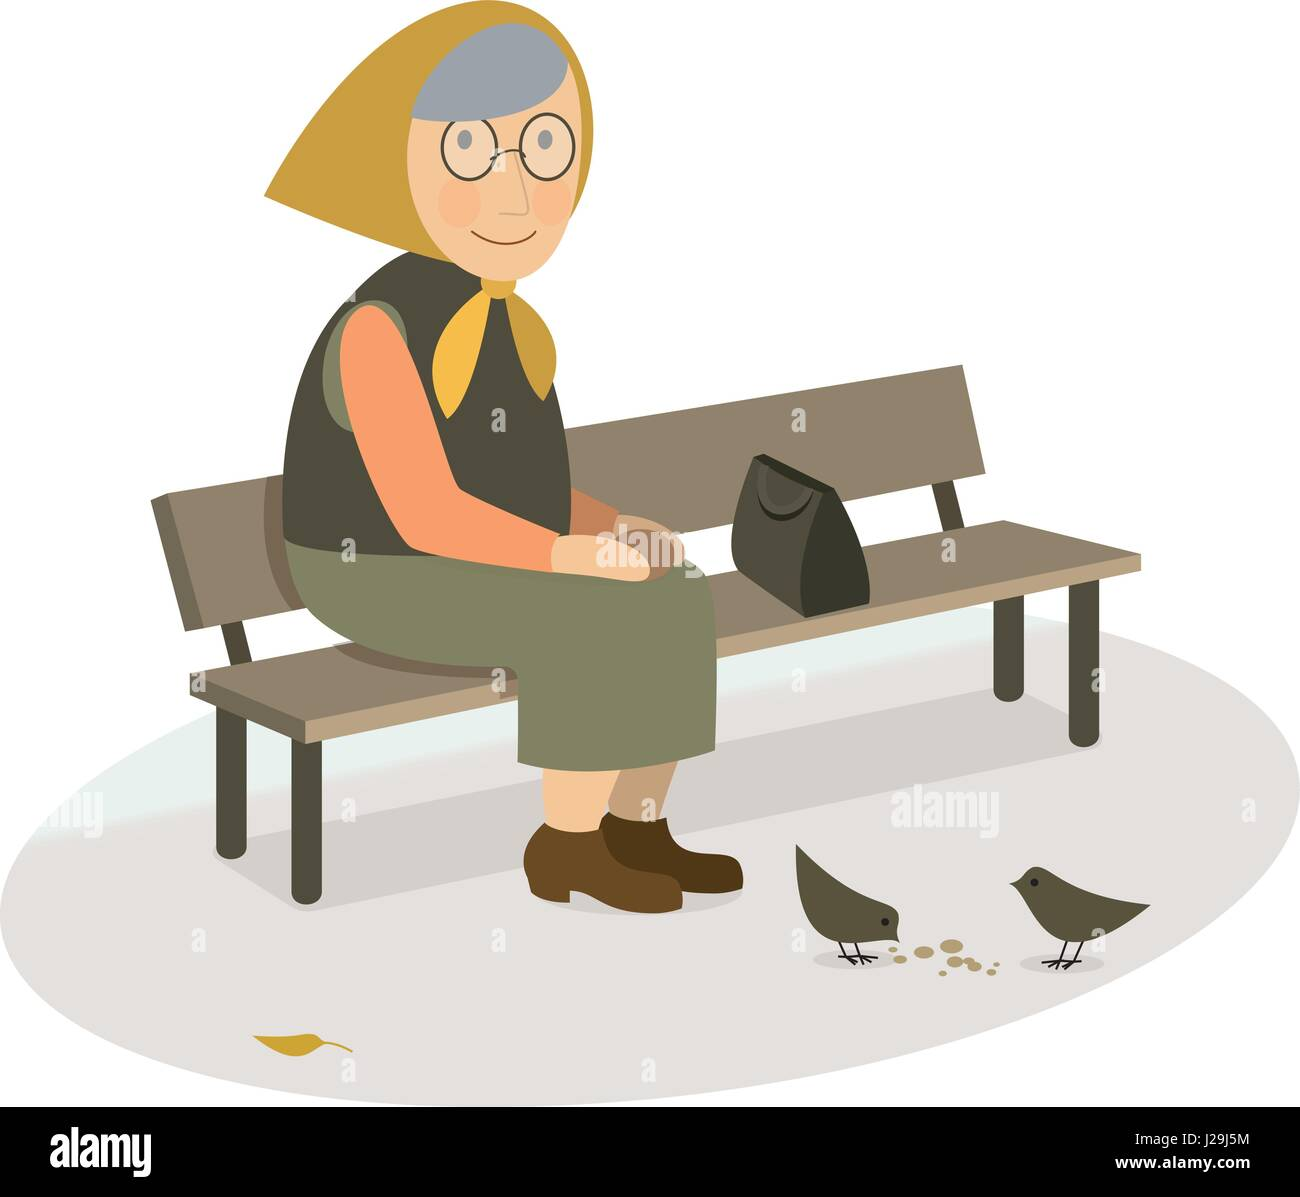 CIS grandmother elderly old woman sitting on a bench feeding pigeons with bread crumbs in the park Vector flat illustration - Stock Vector